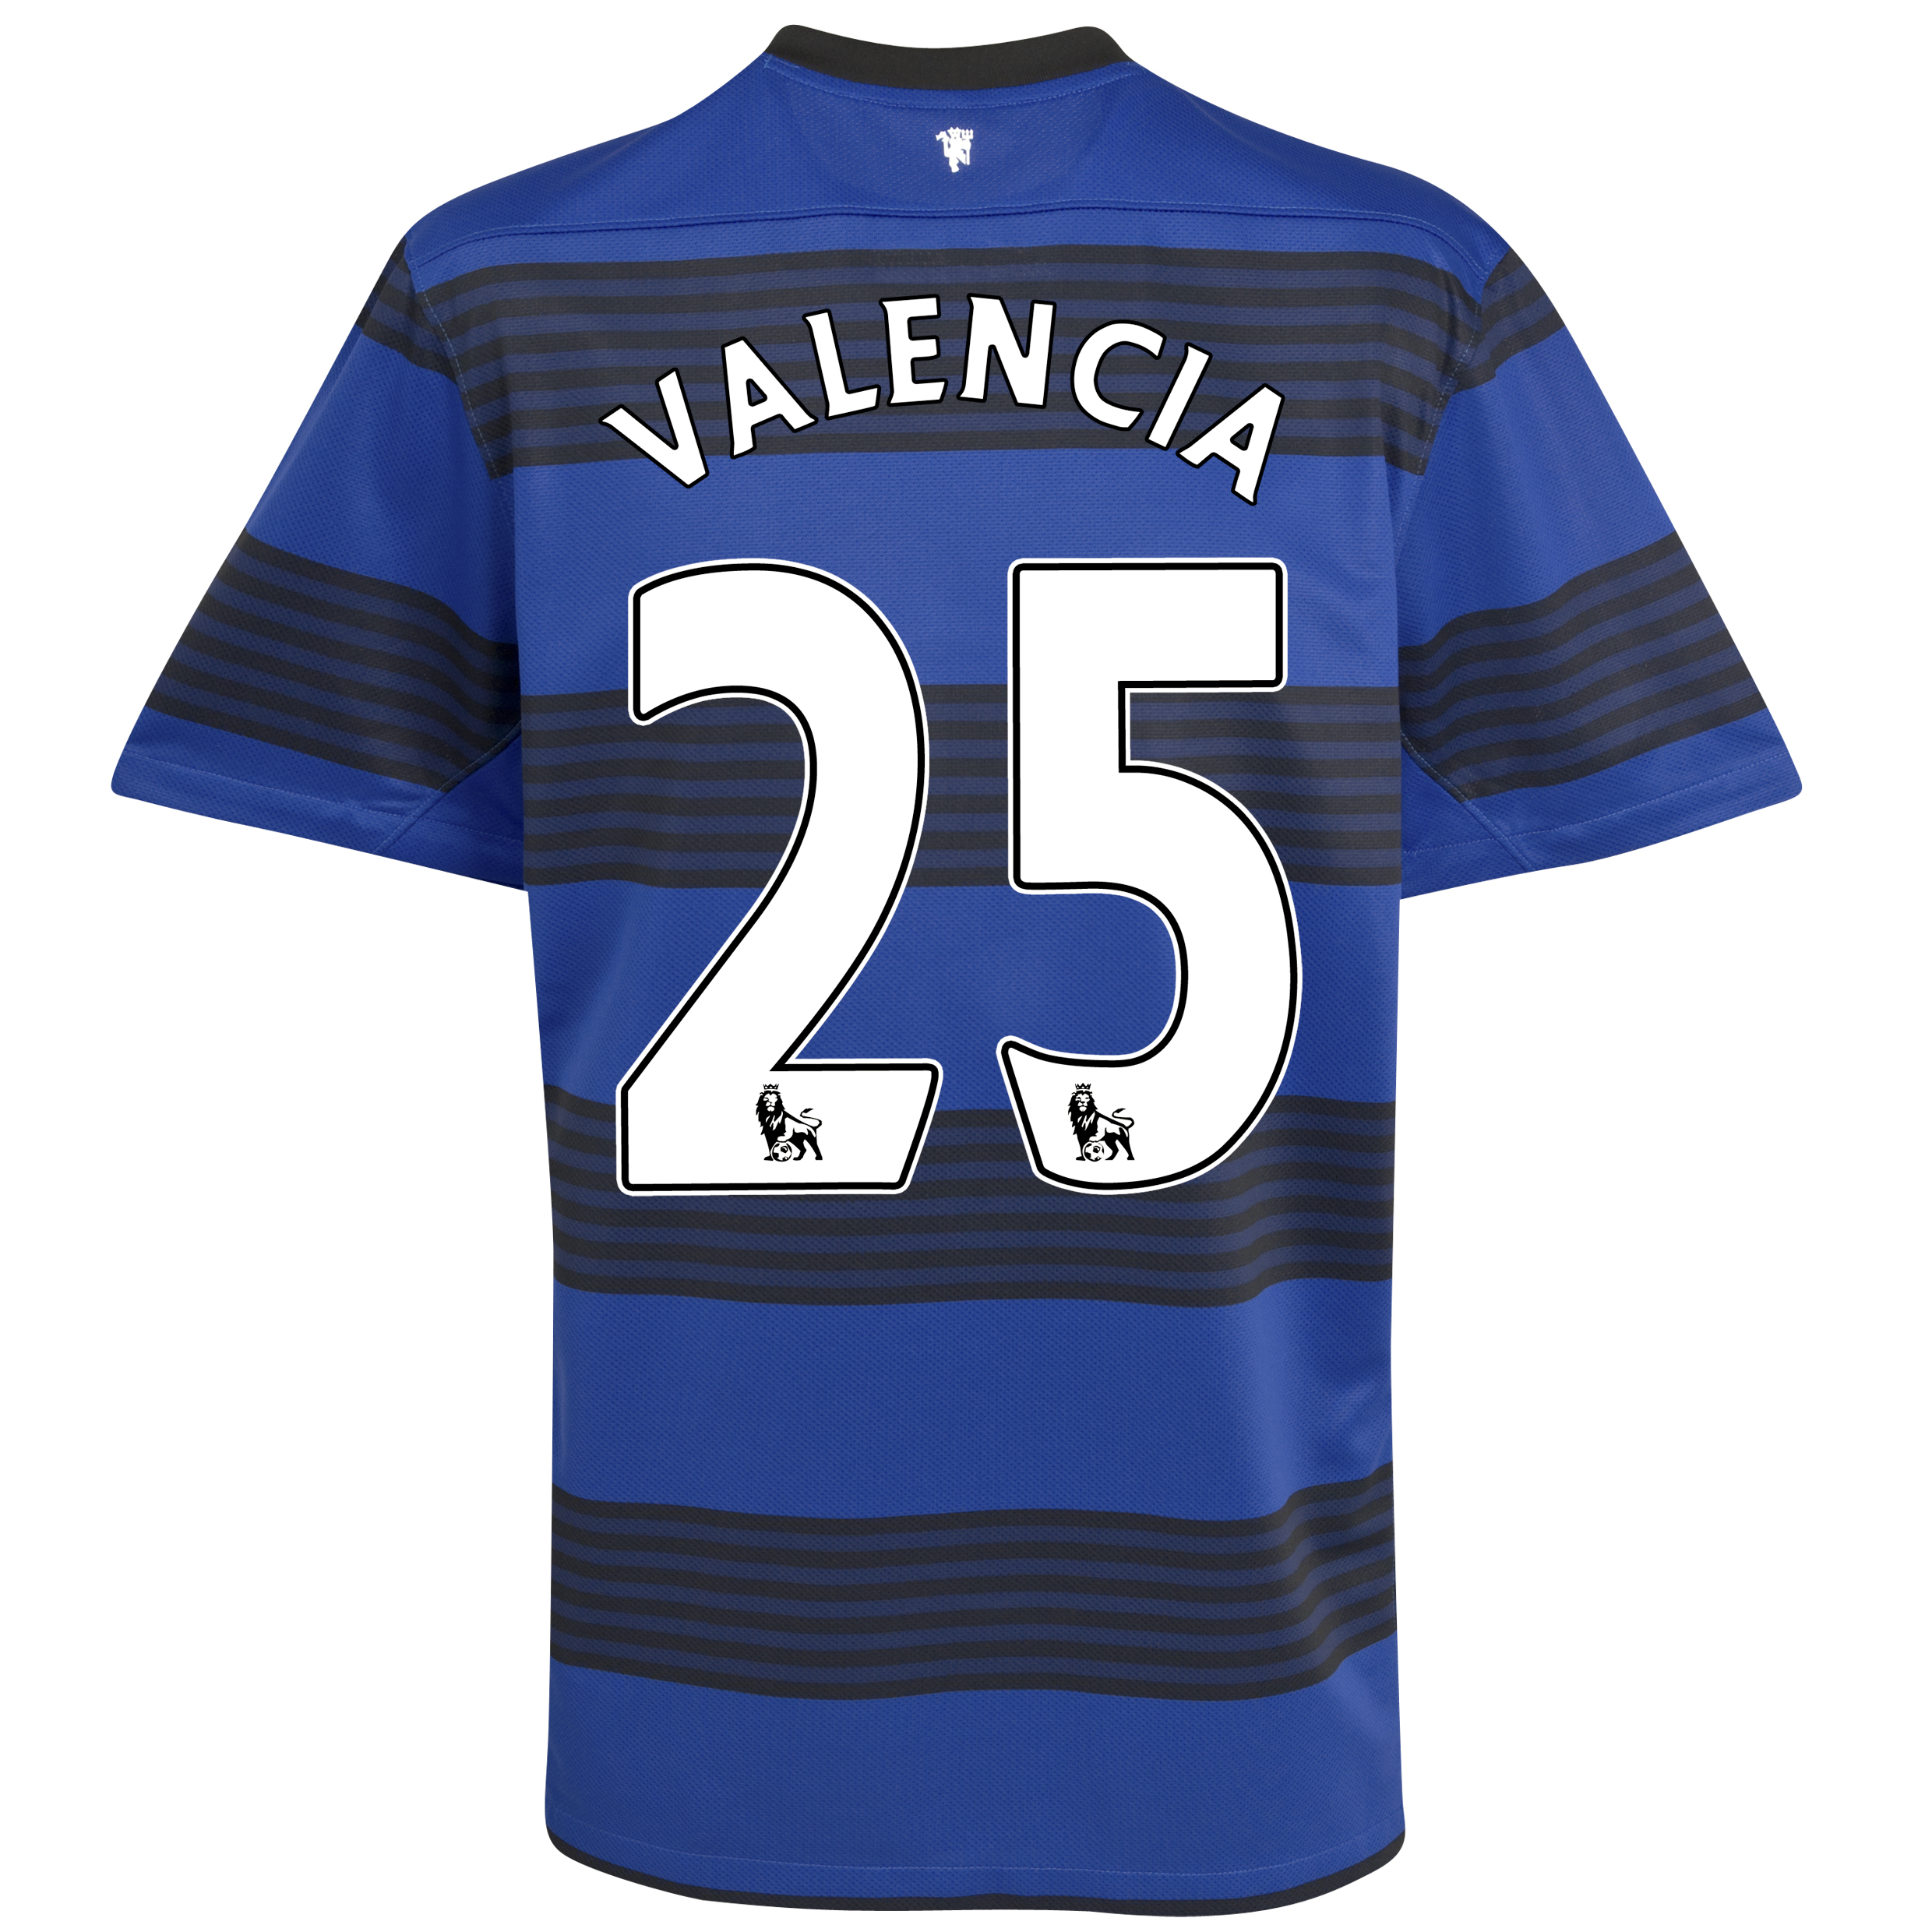 Manchester United Away Shirt 2011/12 with Valencia 25 printing